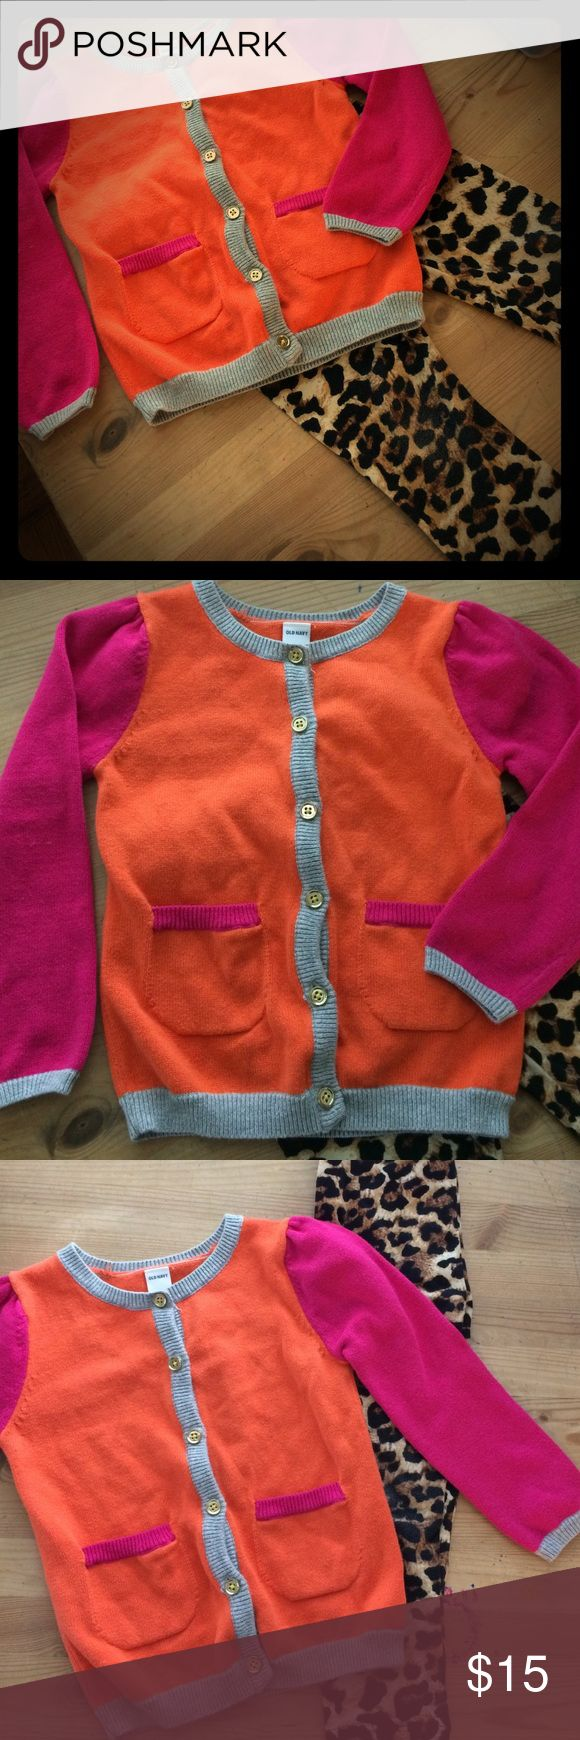 Girls Toddler Cardigan & Cheetah Leggings Bright orange & Pink Cardigan size 4T girls sweater with front pockets.Super soft cheetah print leggings unbranded 3T/4T gently Preowned very minimal light wear at the knees if you look close.Lots of life left in this cute set! Old Navy Bottoms Leggings